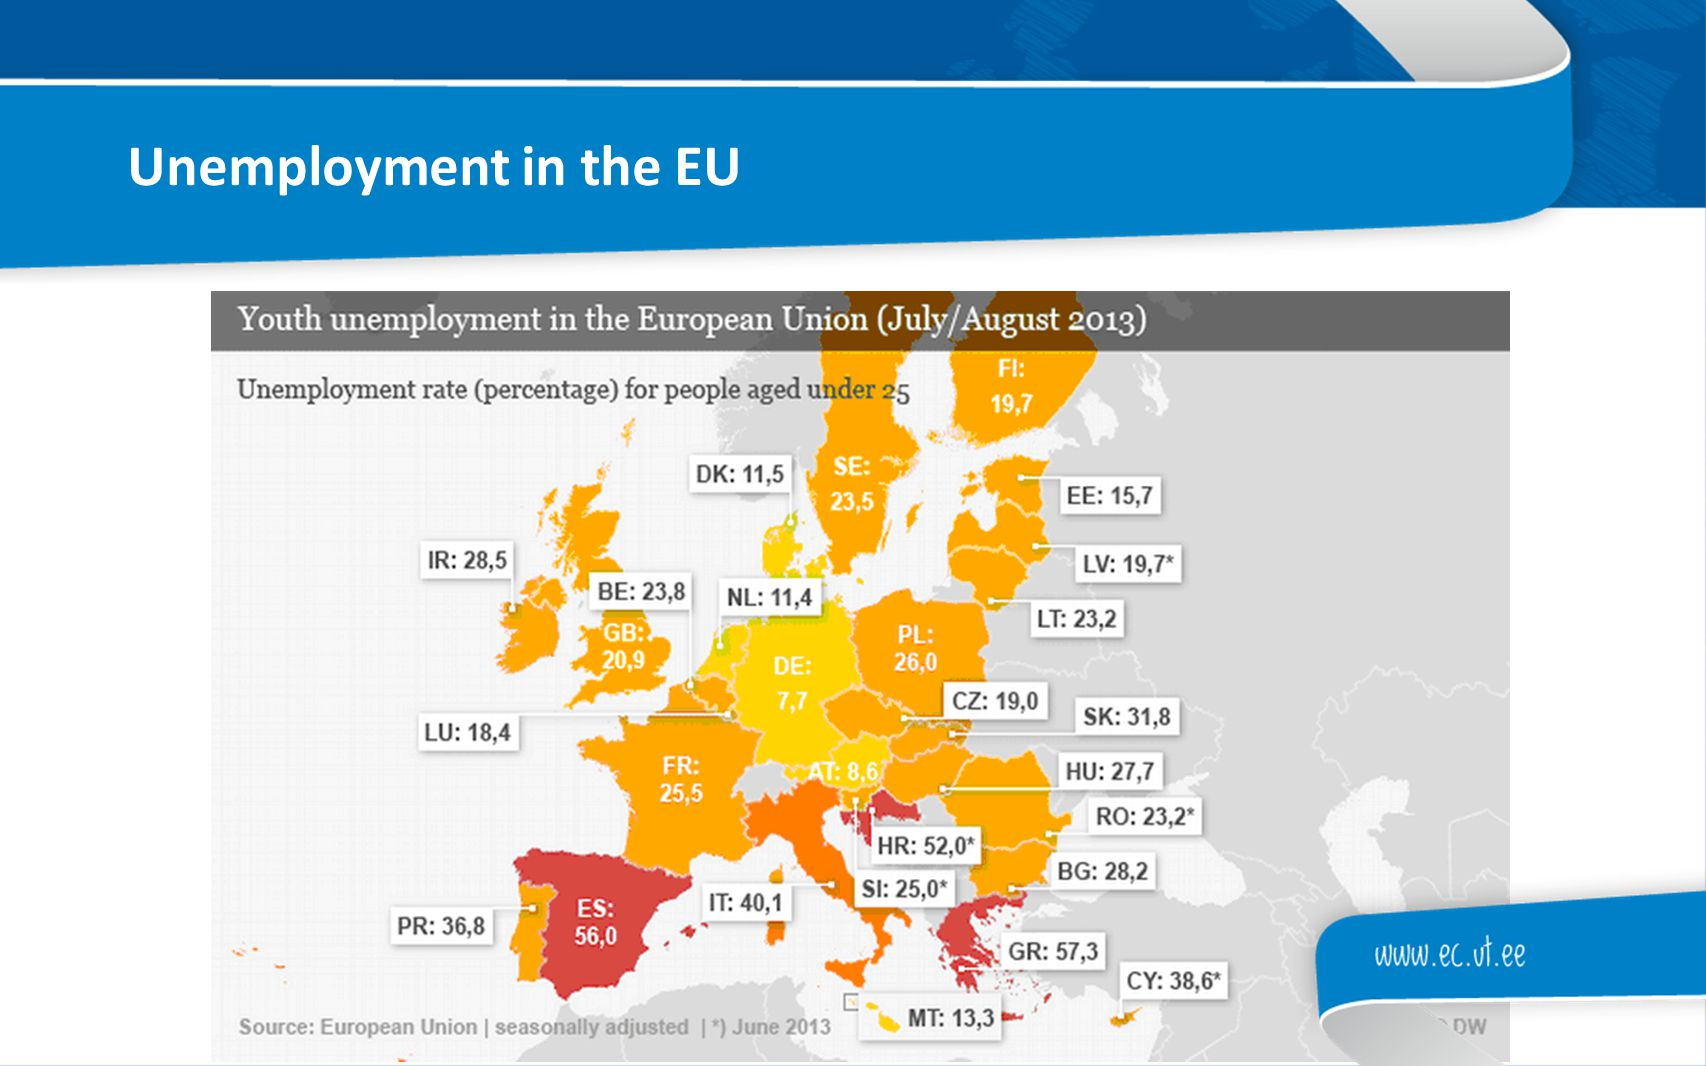 Unemployment in the EU